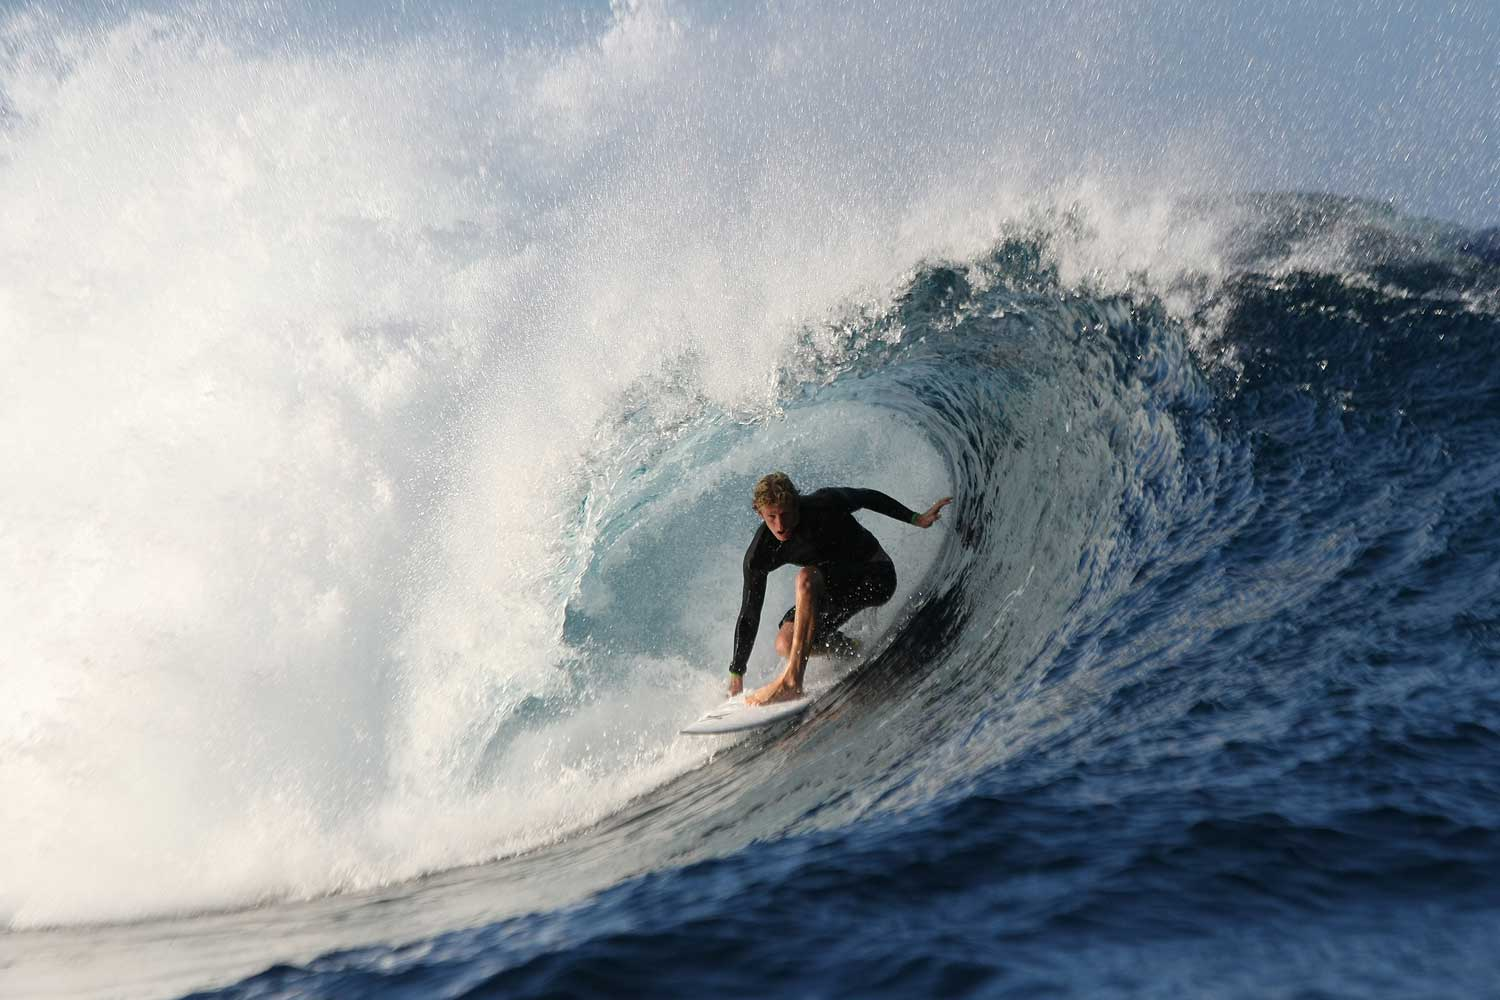 After growing up in Hale'iwa, Hawaii, Florence was featured in SURF Magazine when he was only 13-years-old. Ever since then, he's been leading the charge in competitive surfing, performing innovative tricks including the ridiculous alley-oop that he's quickly becoming known for.